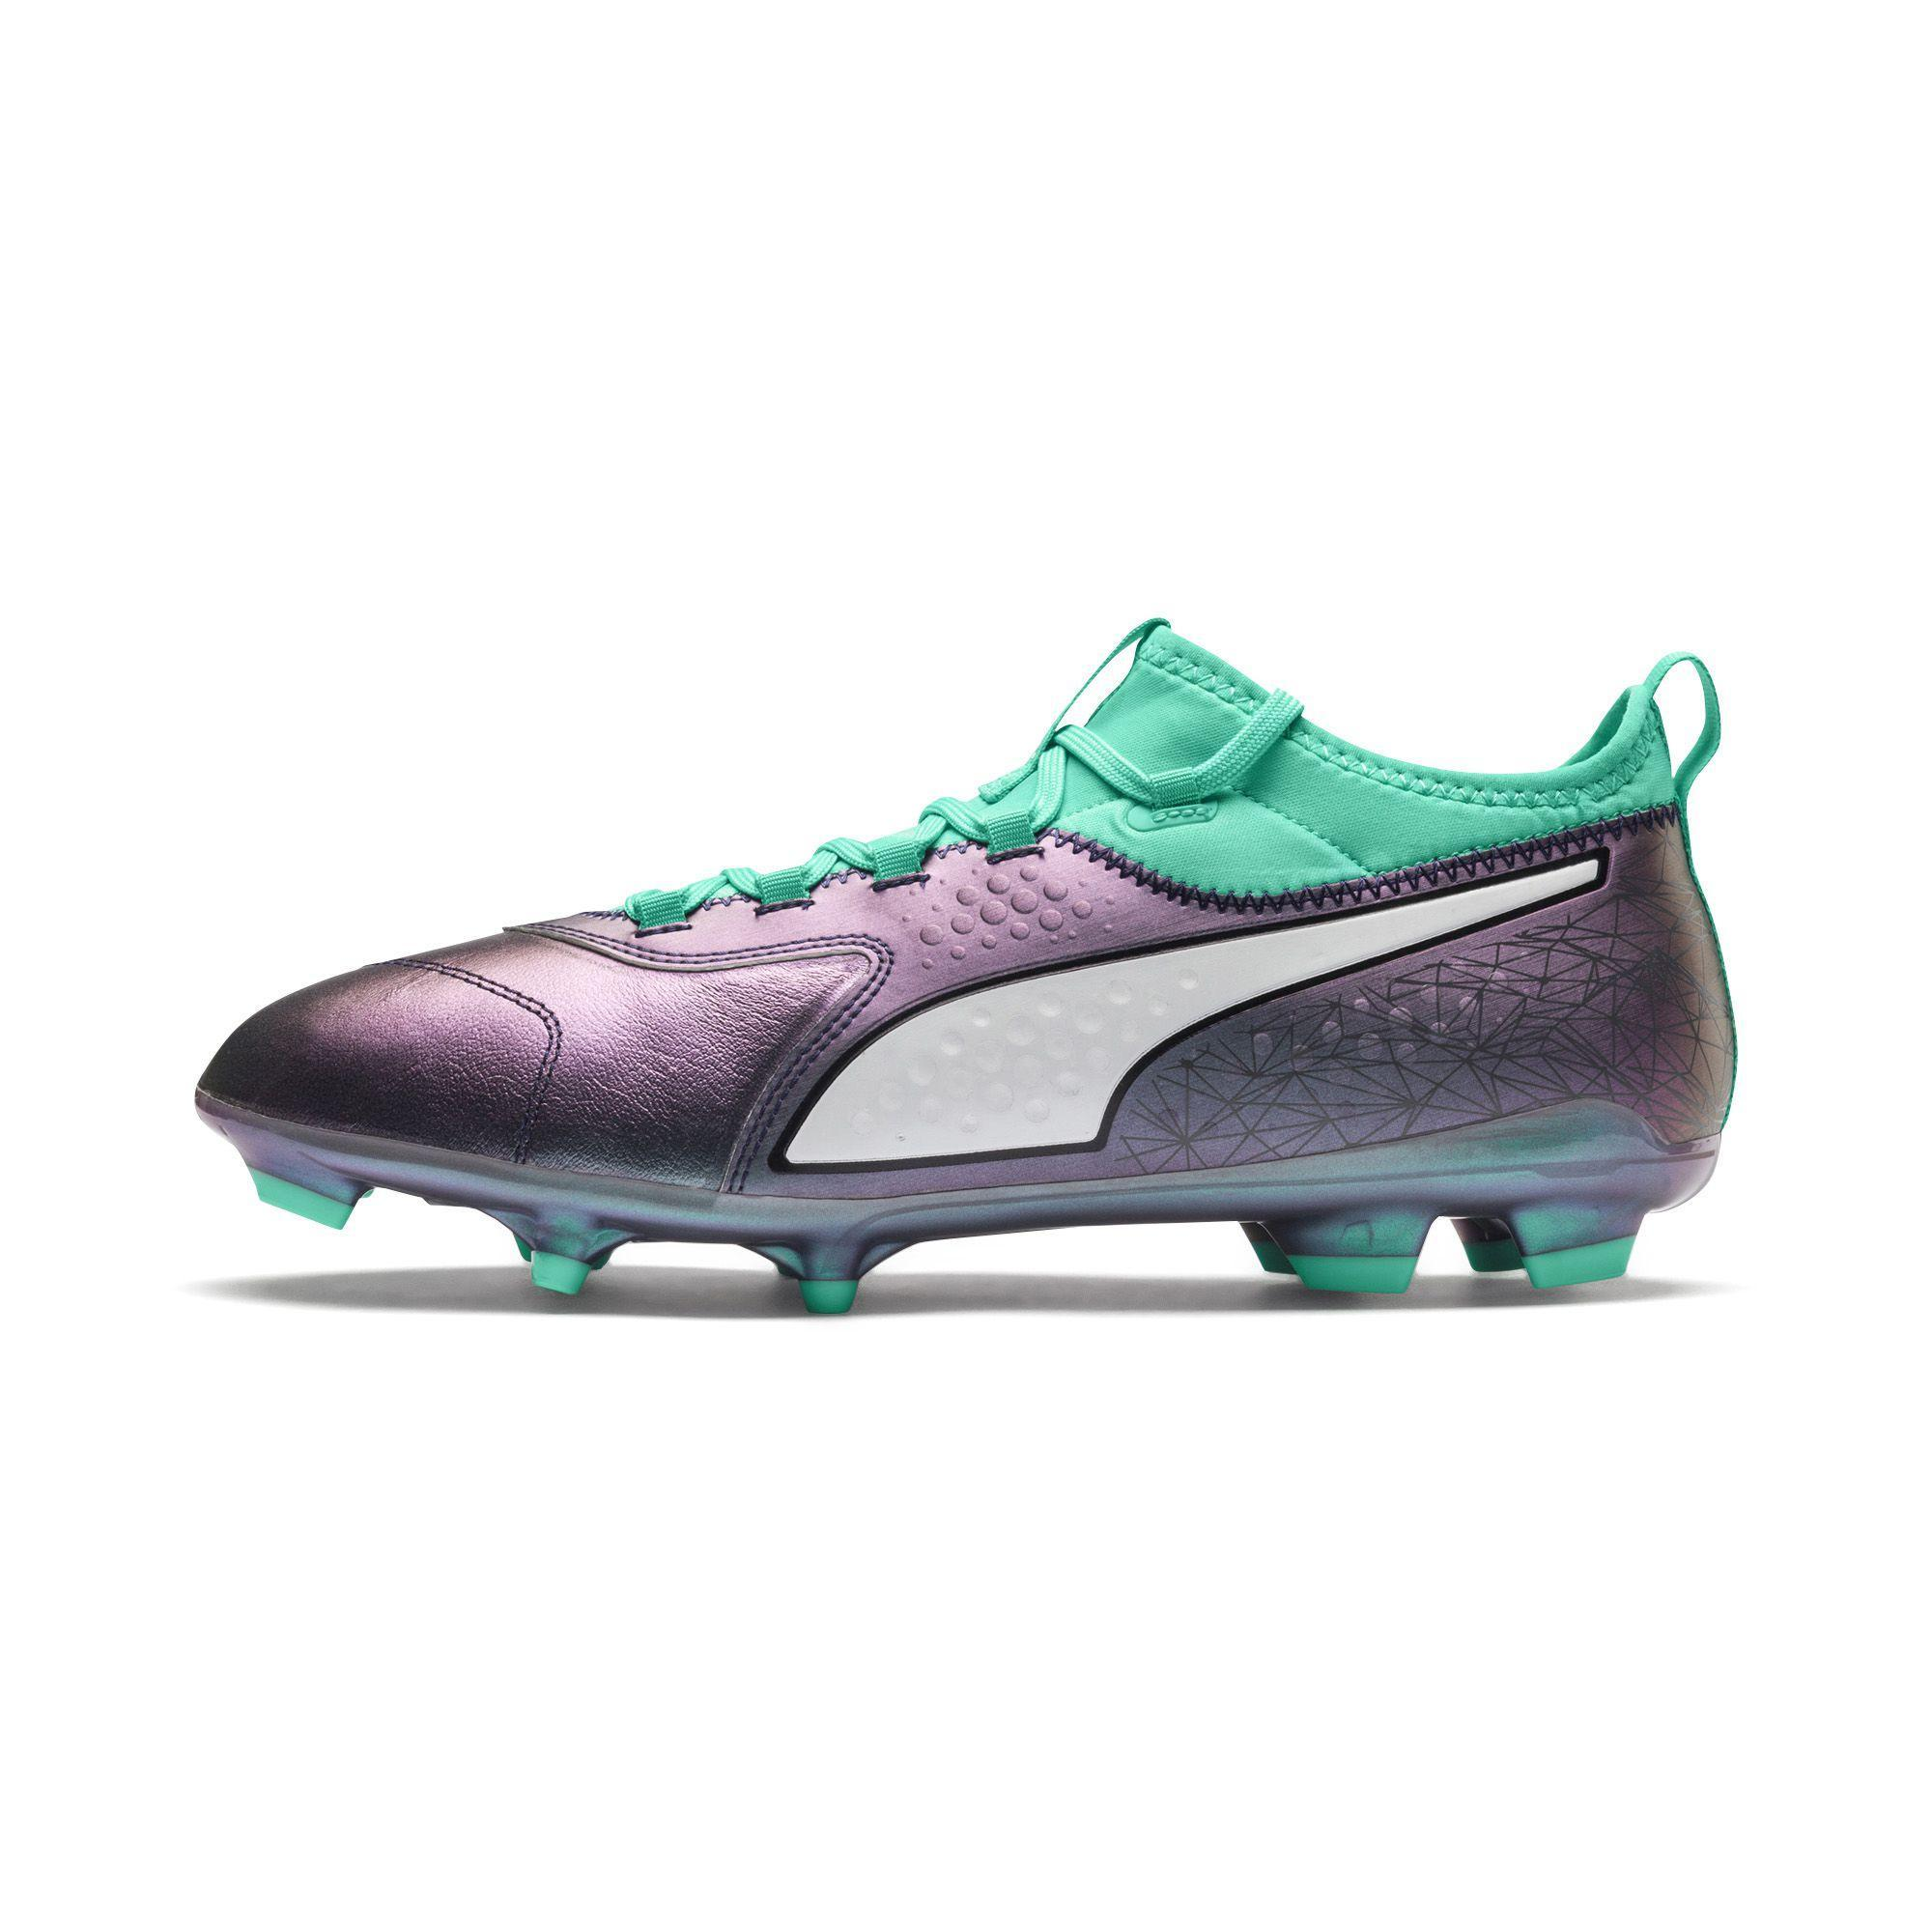 18af81170 Puma Scarpe Calcio One 3 Illuminate Leather Fg Verde - Tifoshop.com